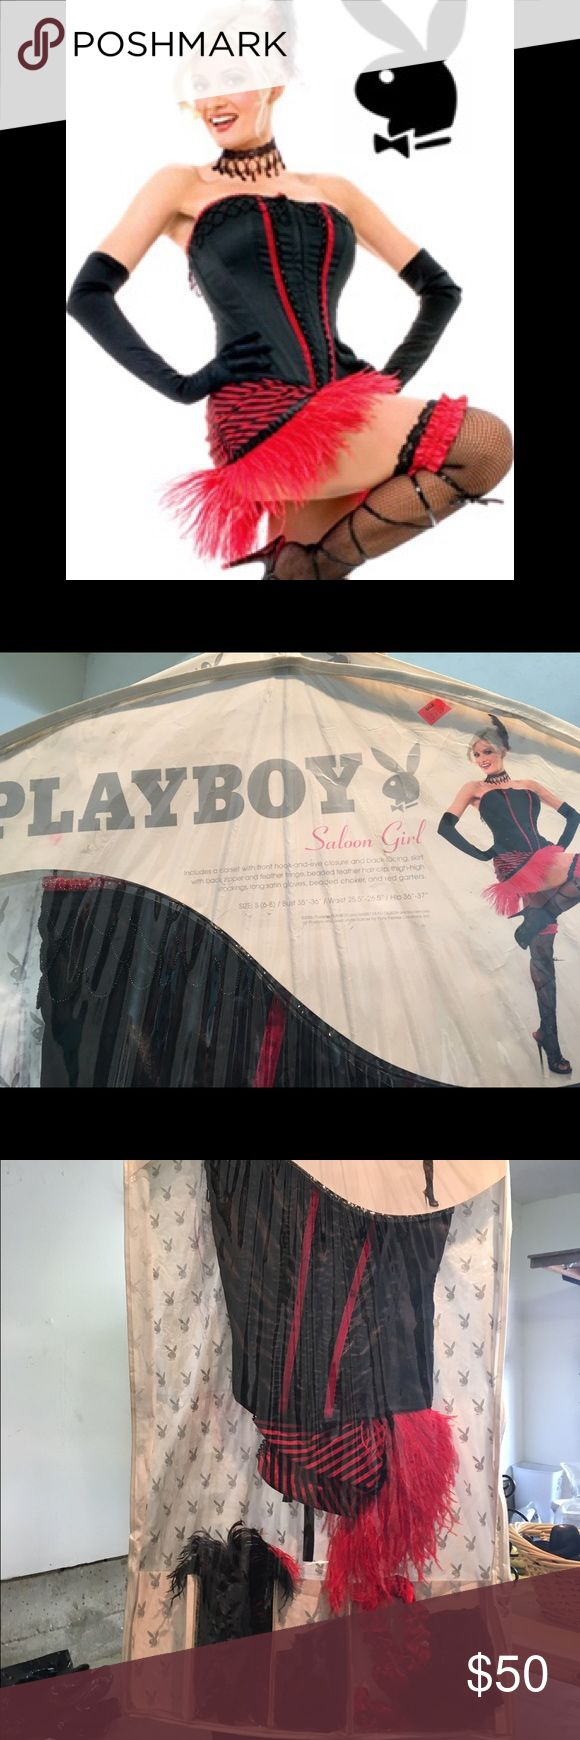 Playboy Halloween Costume Saloon Girl Playboy Halloween costume. Fully intact only worn once. Playboy Accessories